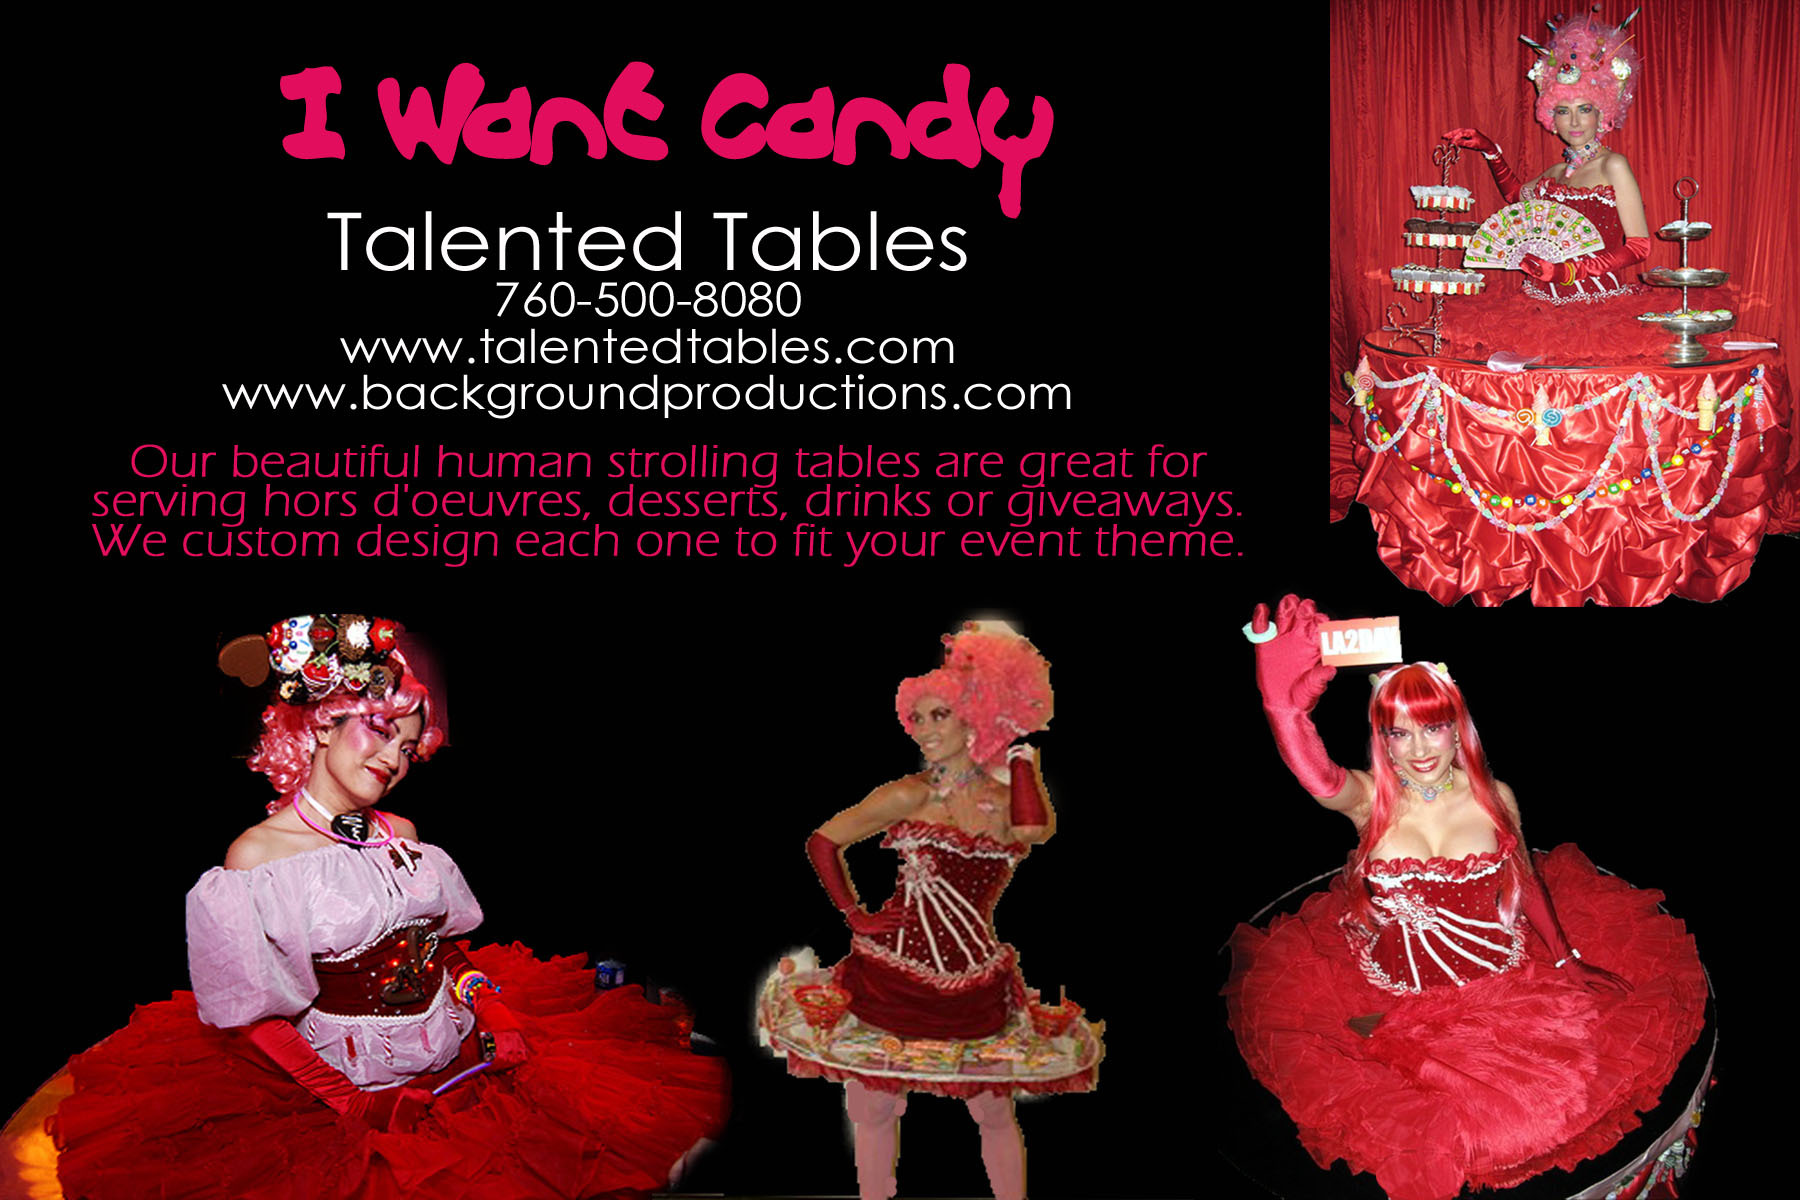 Reception, Flowers & Decor, Cakes, pink, red, cake, Tables & Seating, Candy, Tables, Desserts, Strolling, Strolling tables - talented tables